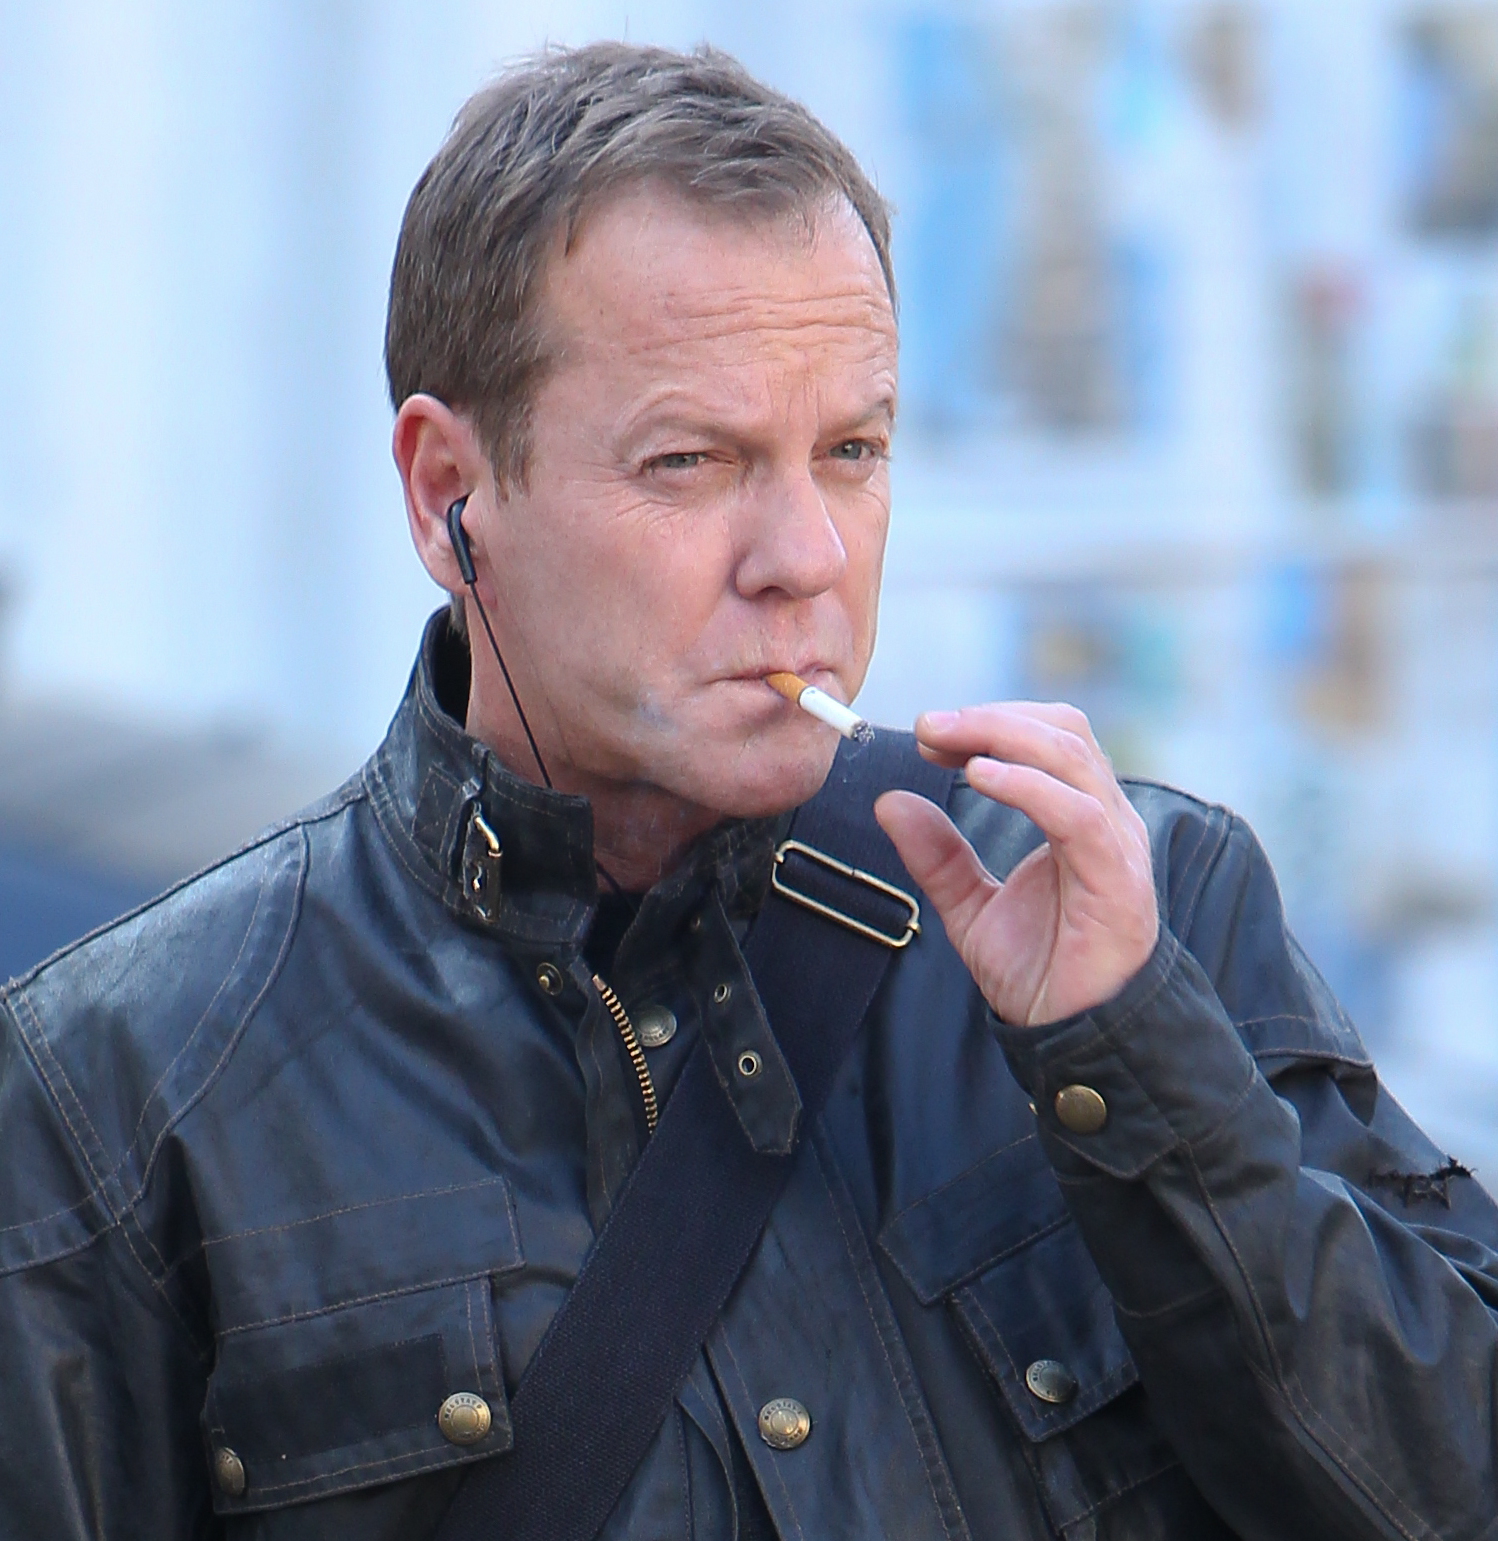 '24: Live Another Day' filming in Central London  Featuring: Kiefer Sutherland Where: London, United Kingdom When: 09 Mar 2014 Credit: WENN.com